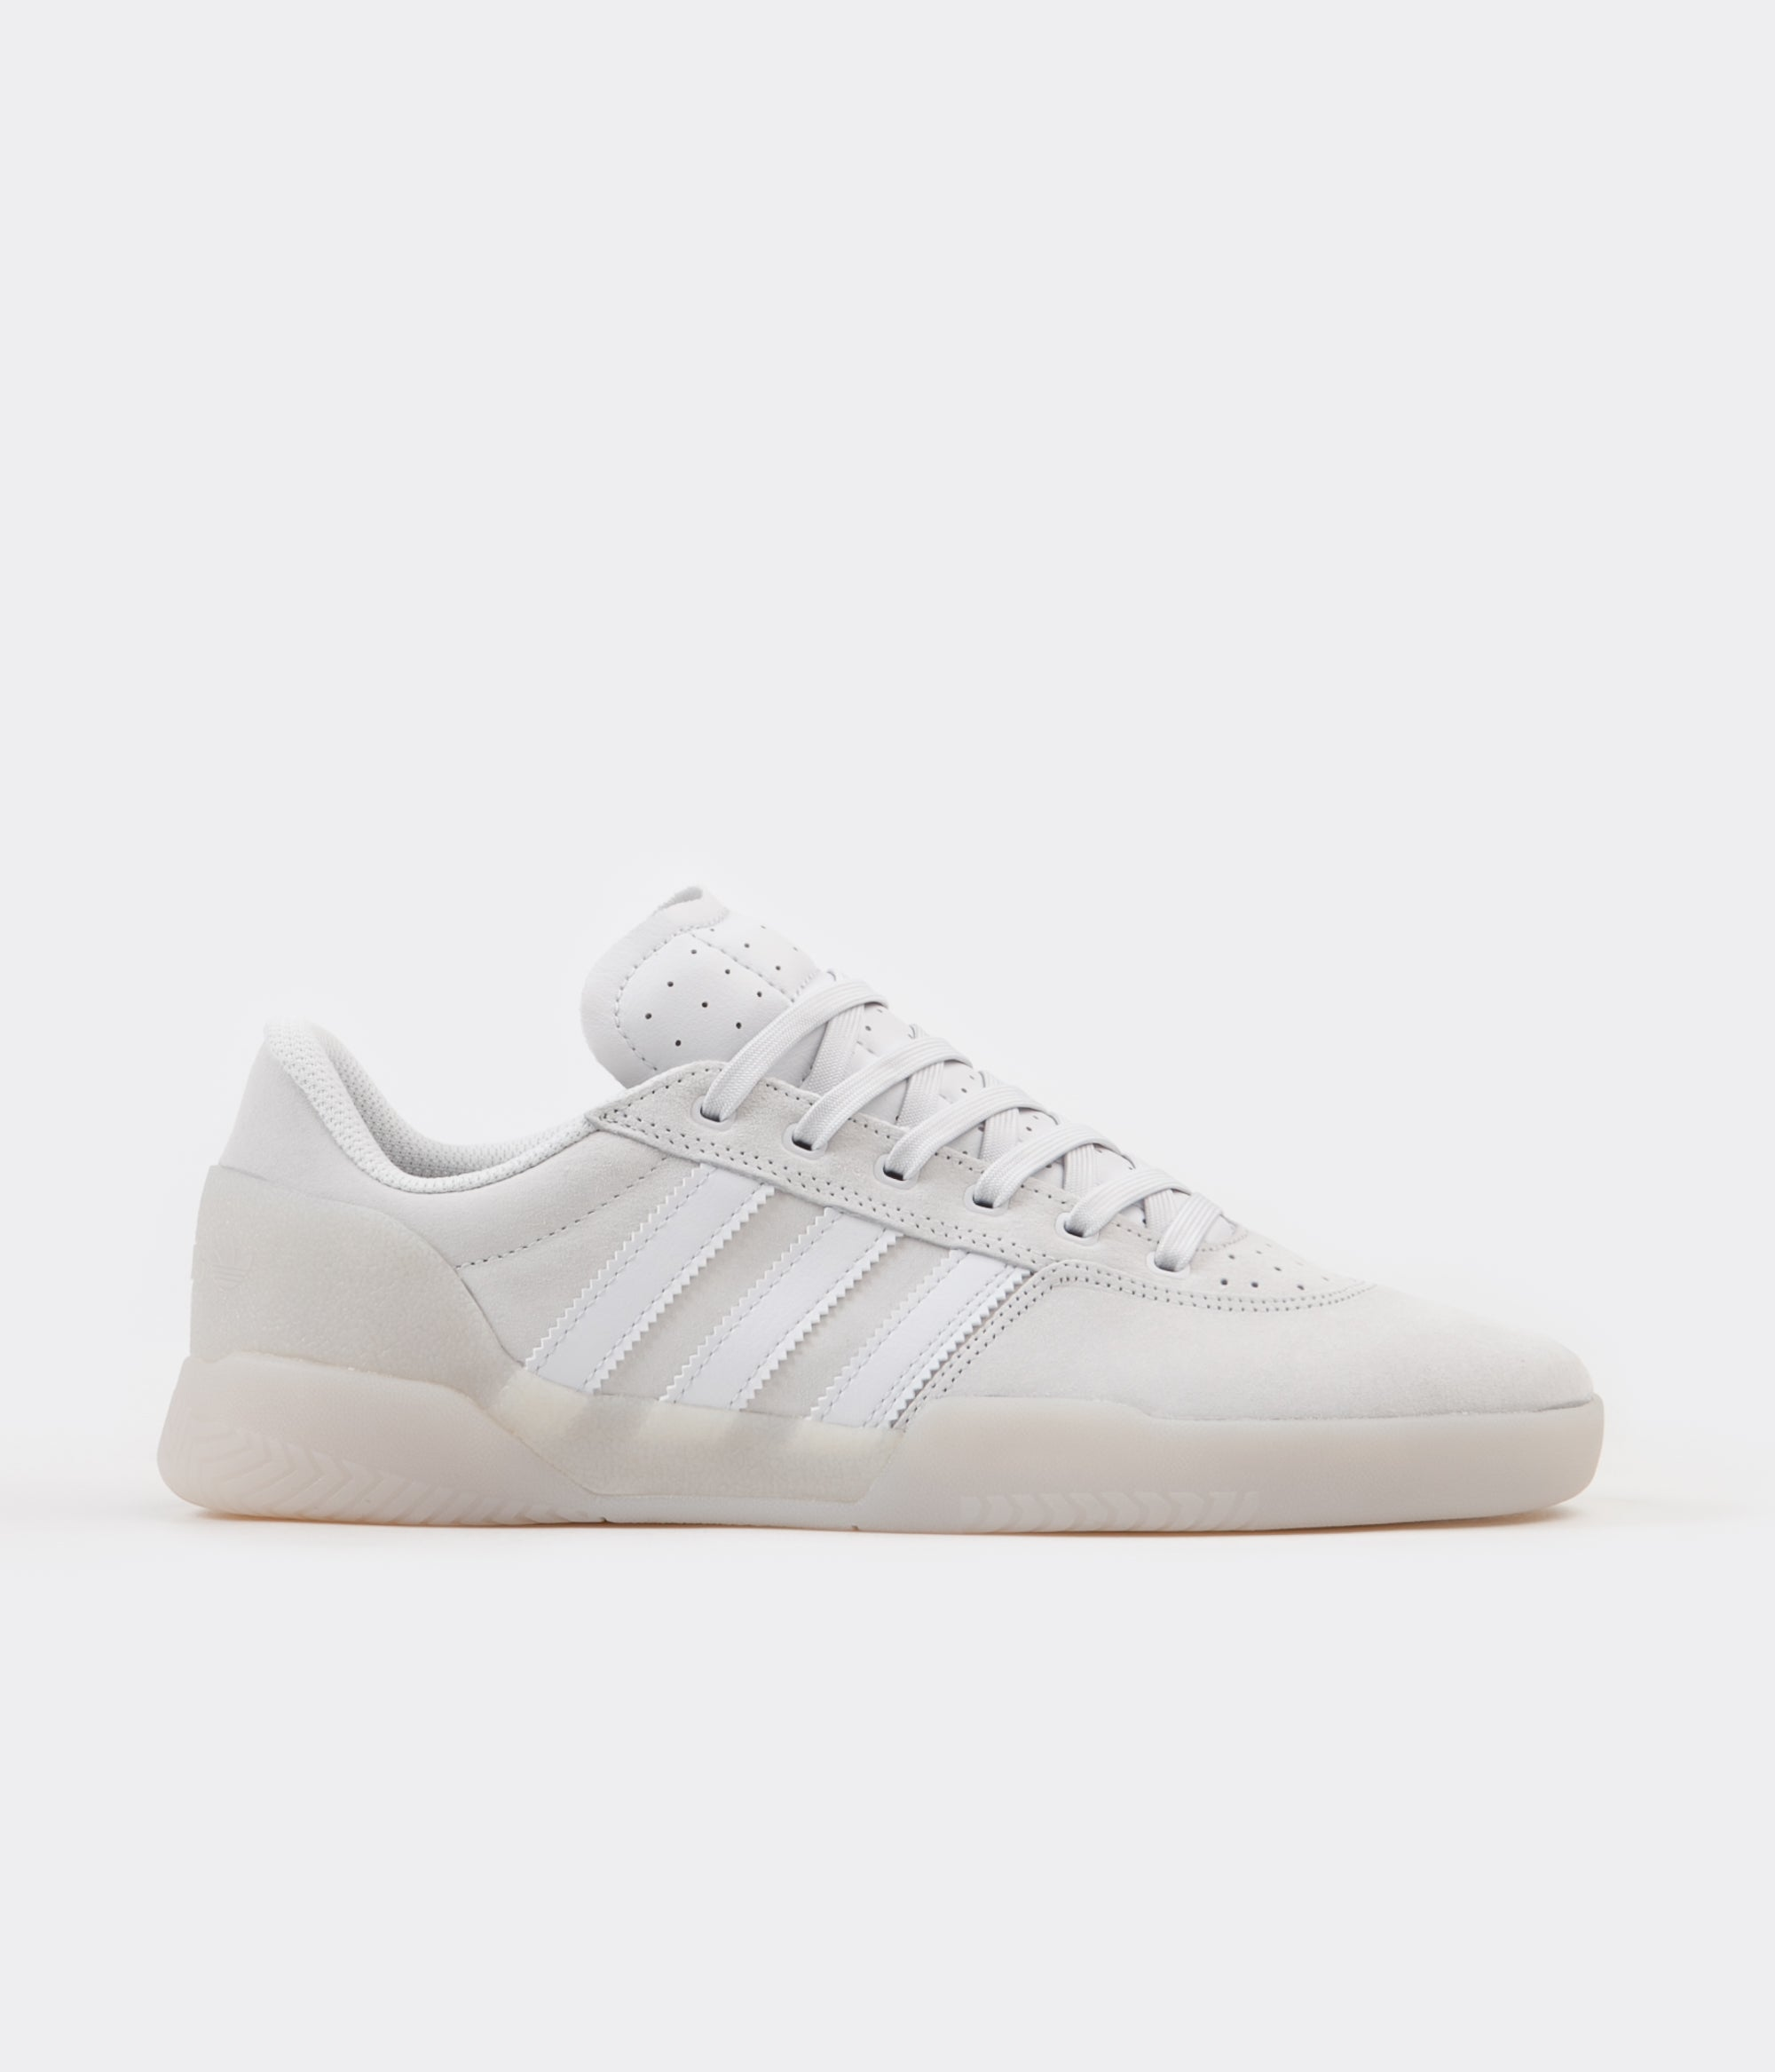 adidas Adidas City Cup Crystal White/ Crystal White/ Crystal White